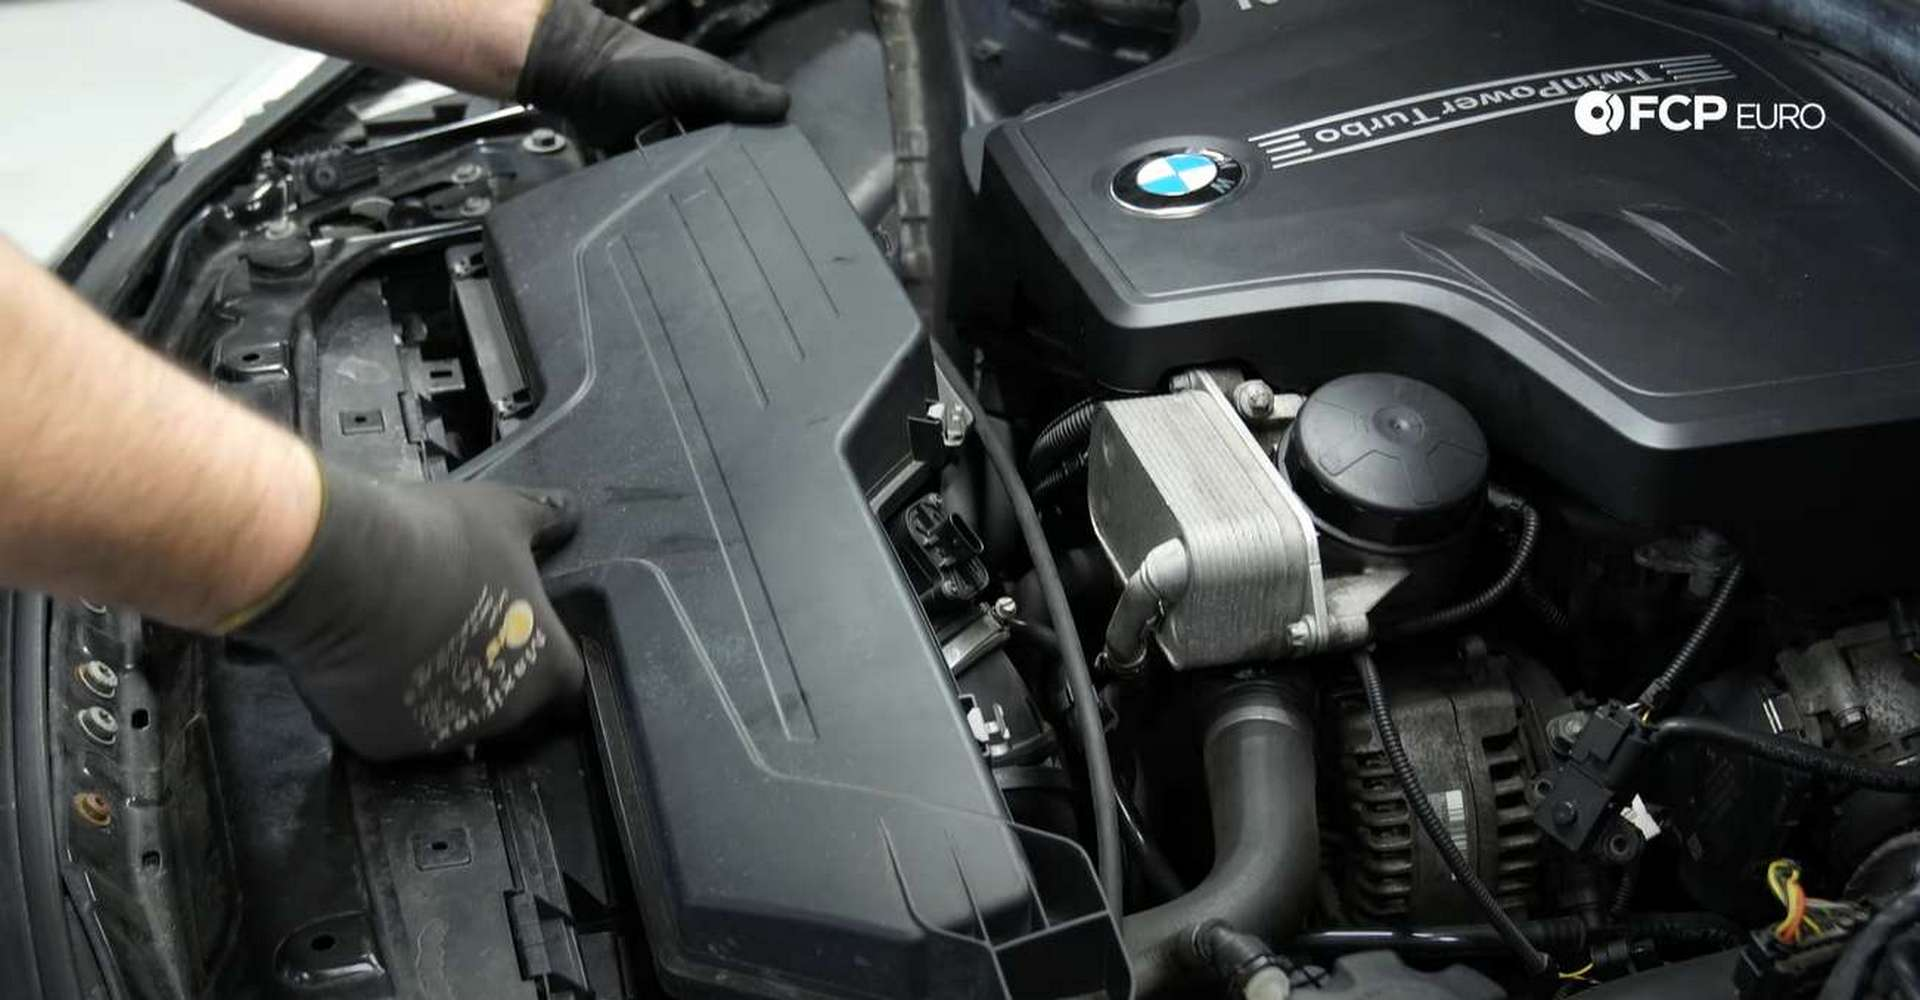 DIY BMW F30 Serpentine Belt Replacement pulling out the airbox